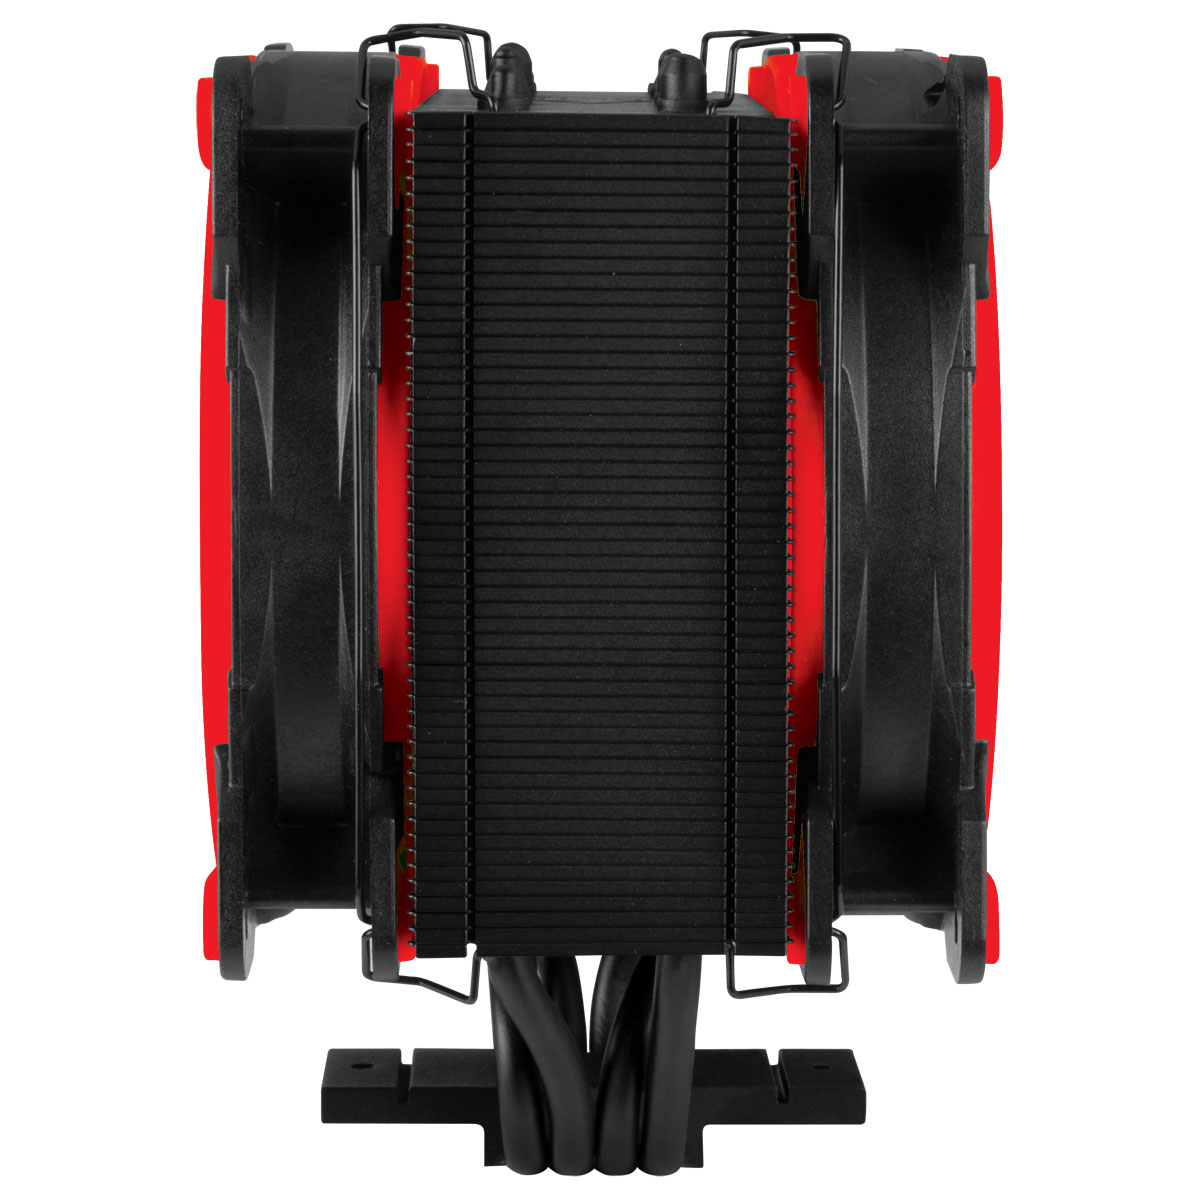 Tower CPU Cooler with Push-Pull Configuration ARCTIC Freezer 34 eSports DUO (Red) Side View